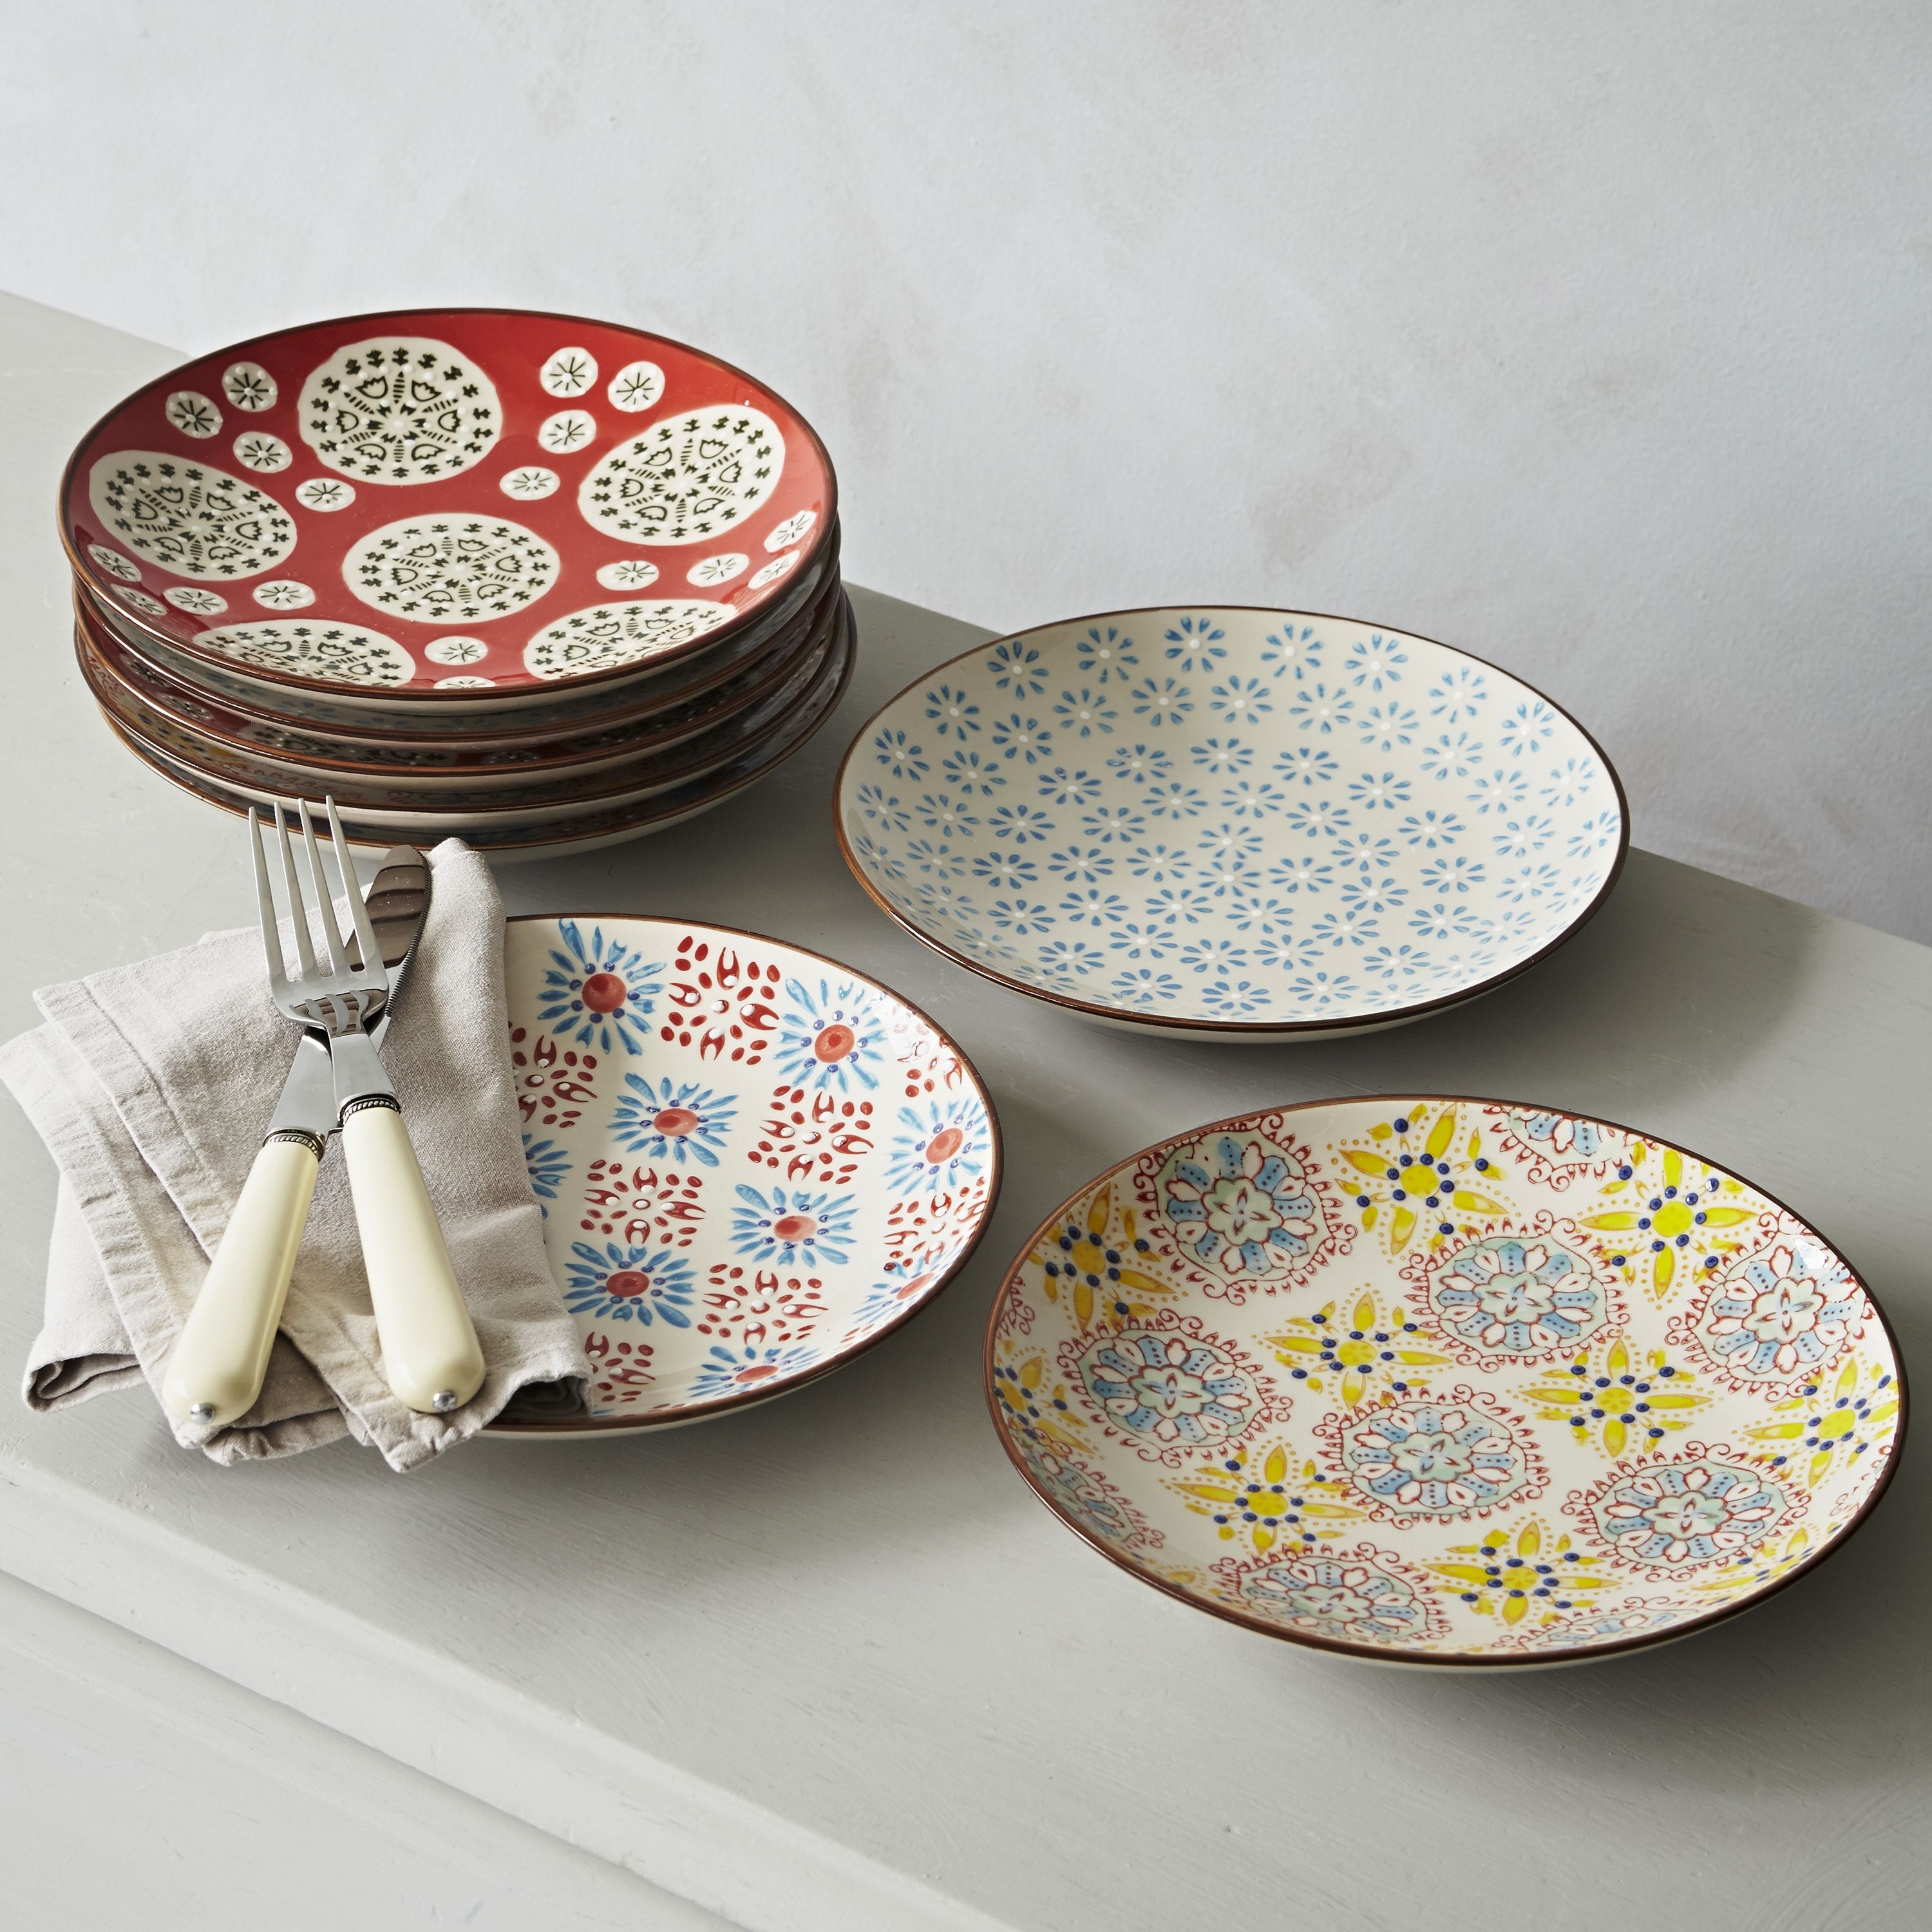 Christmas for Cooks. Pretty DesignsDinner PlatesDinner ... & Mix and match these lovely boho side plates in with your existing ...